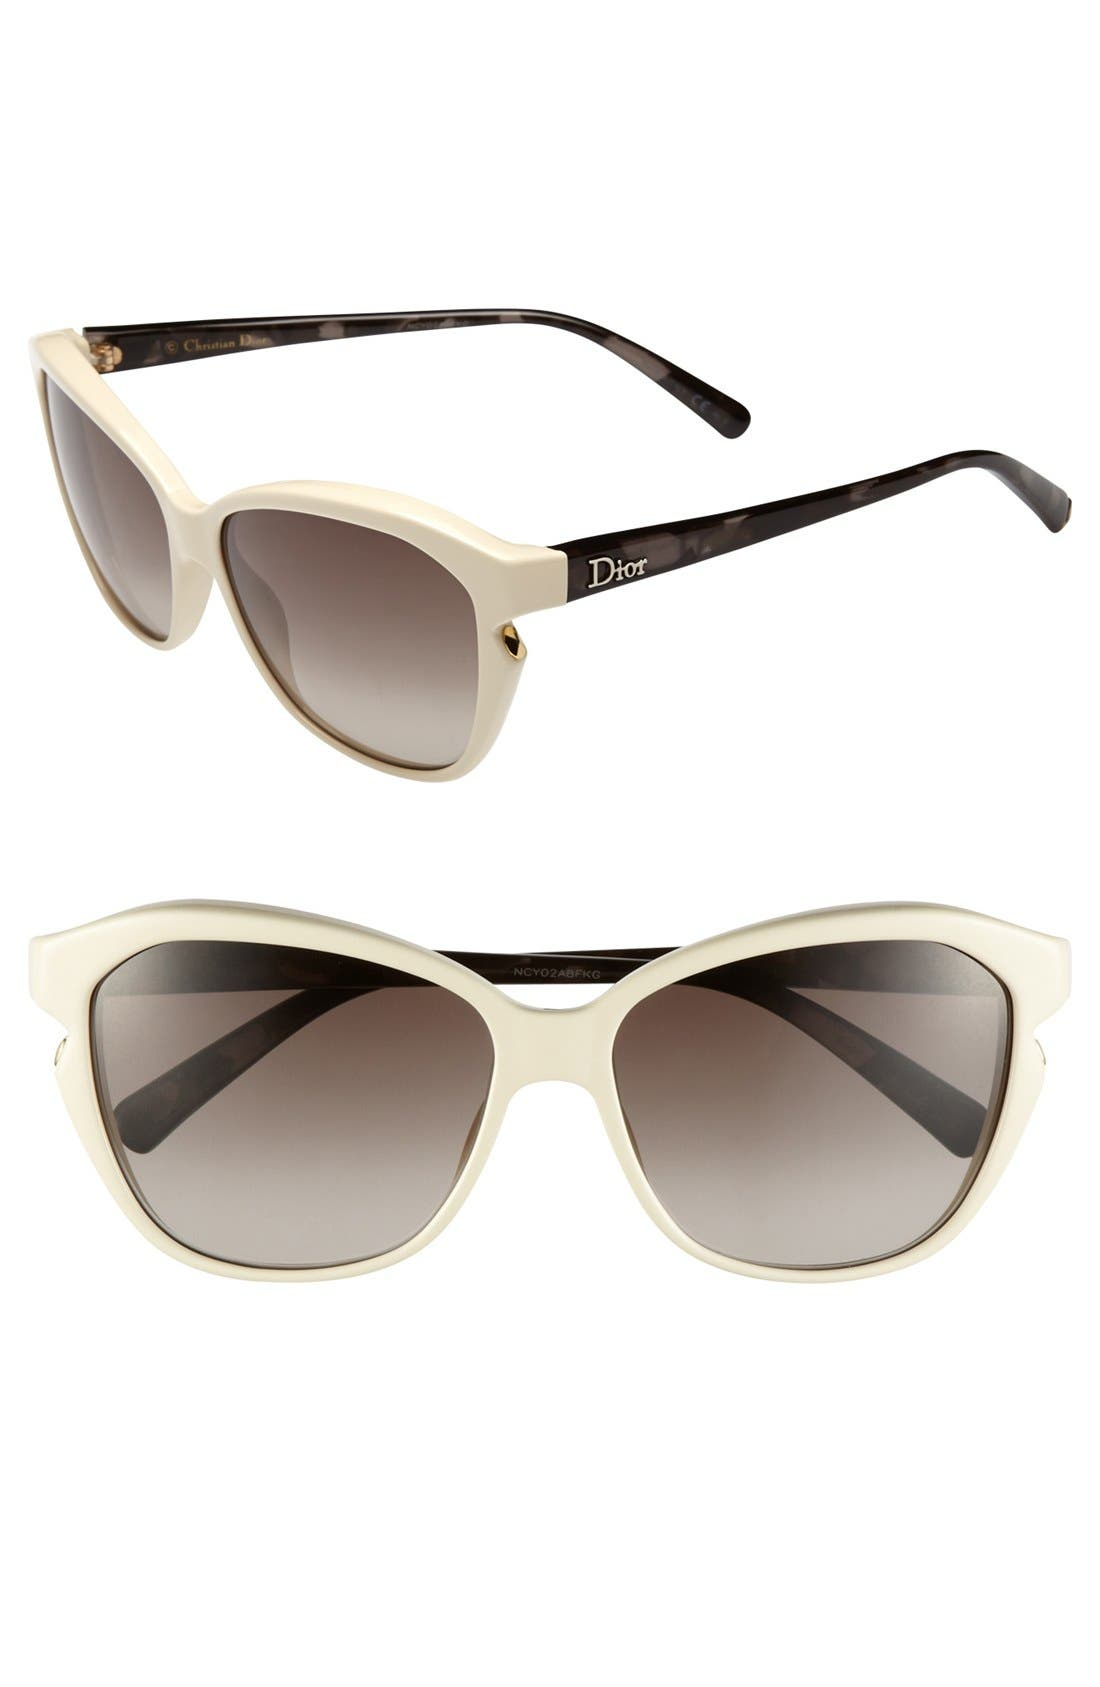 Main Image - Dior 'Simply Dior' 58mm Cat's Eye Sunglasses